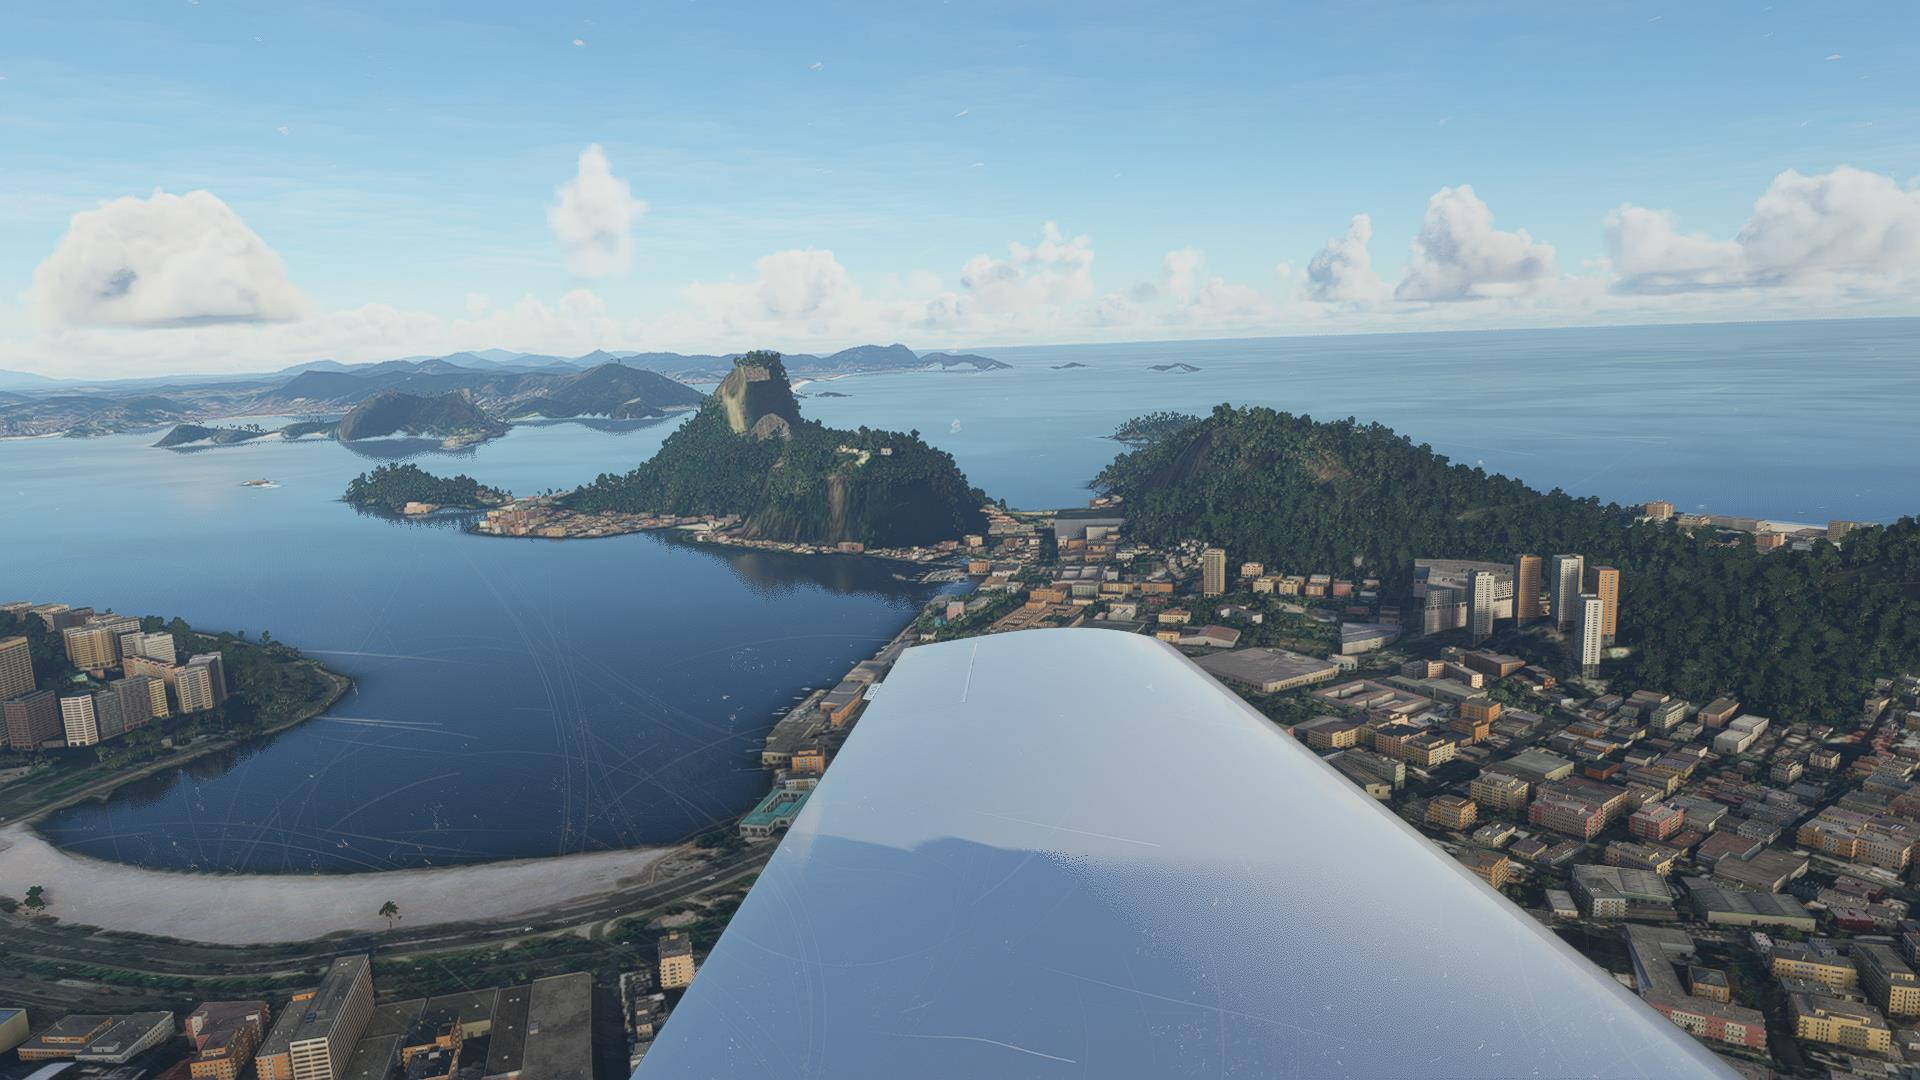 https://vivendobyte.blob.core.windows.net/57793/Microsoft Flight Simulator 13_01_2021 19_51_48.jpg